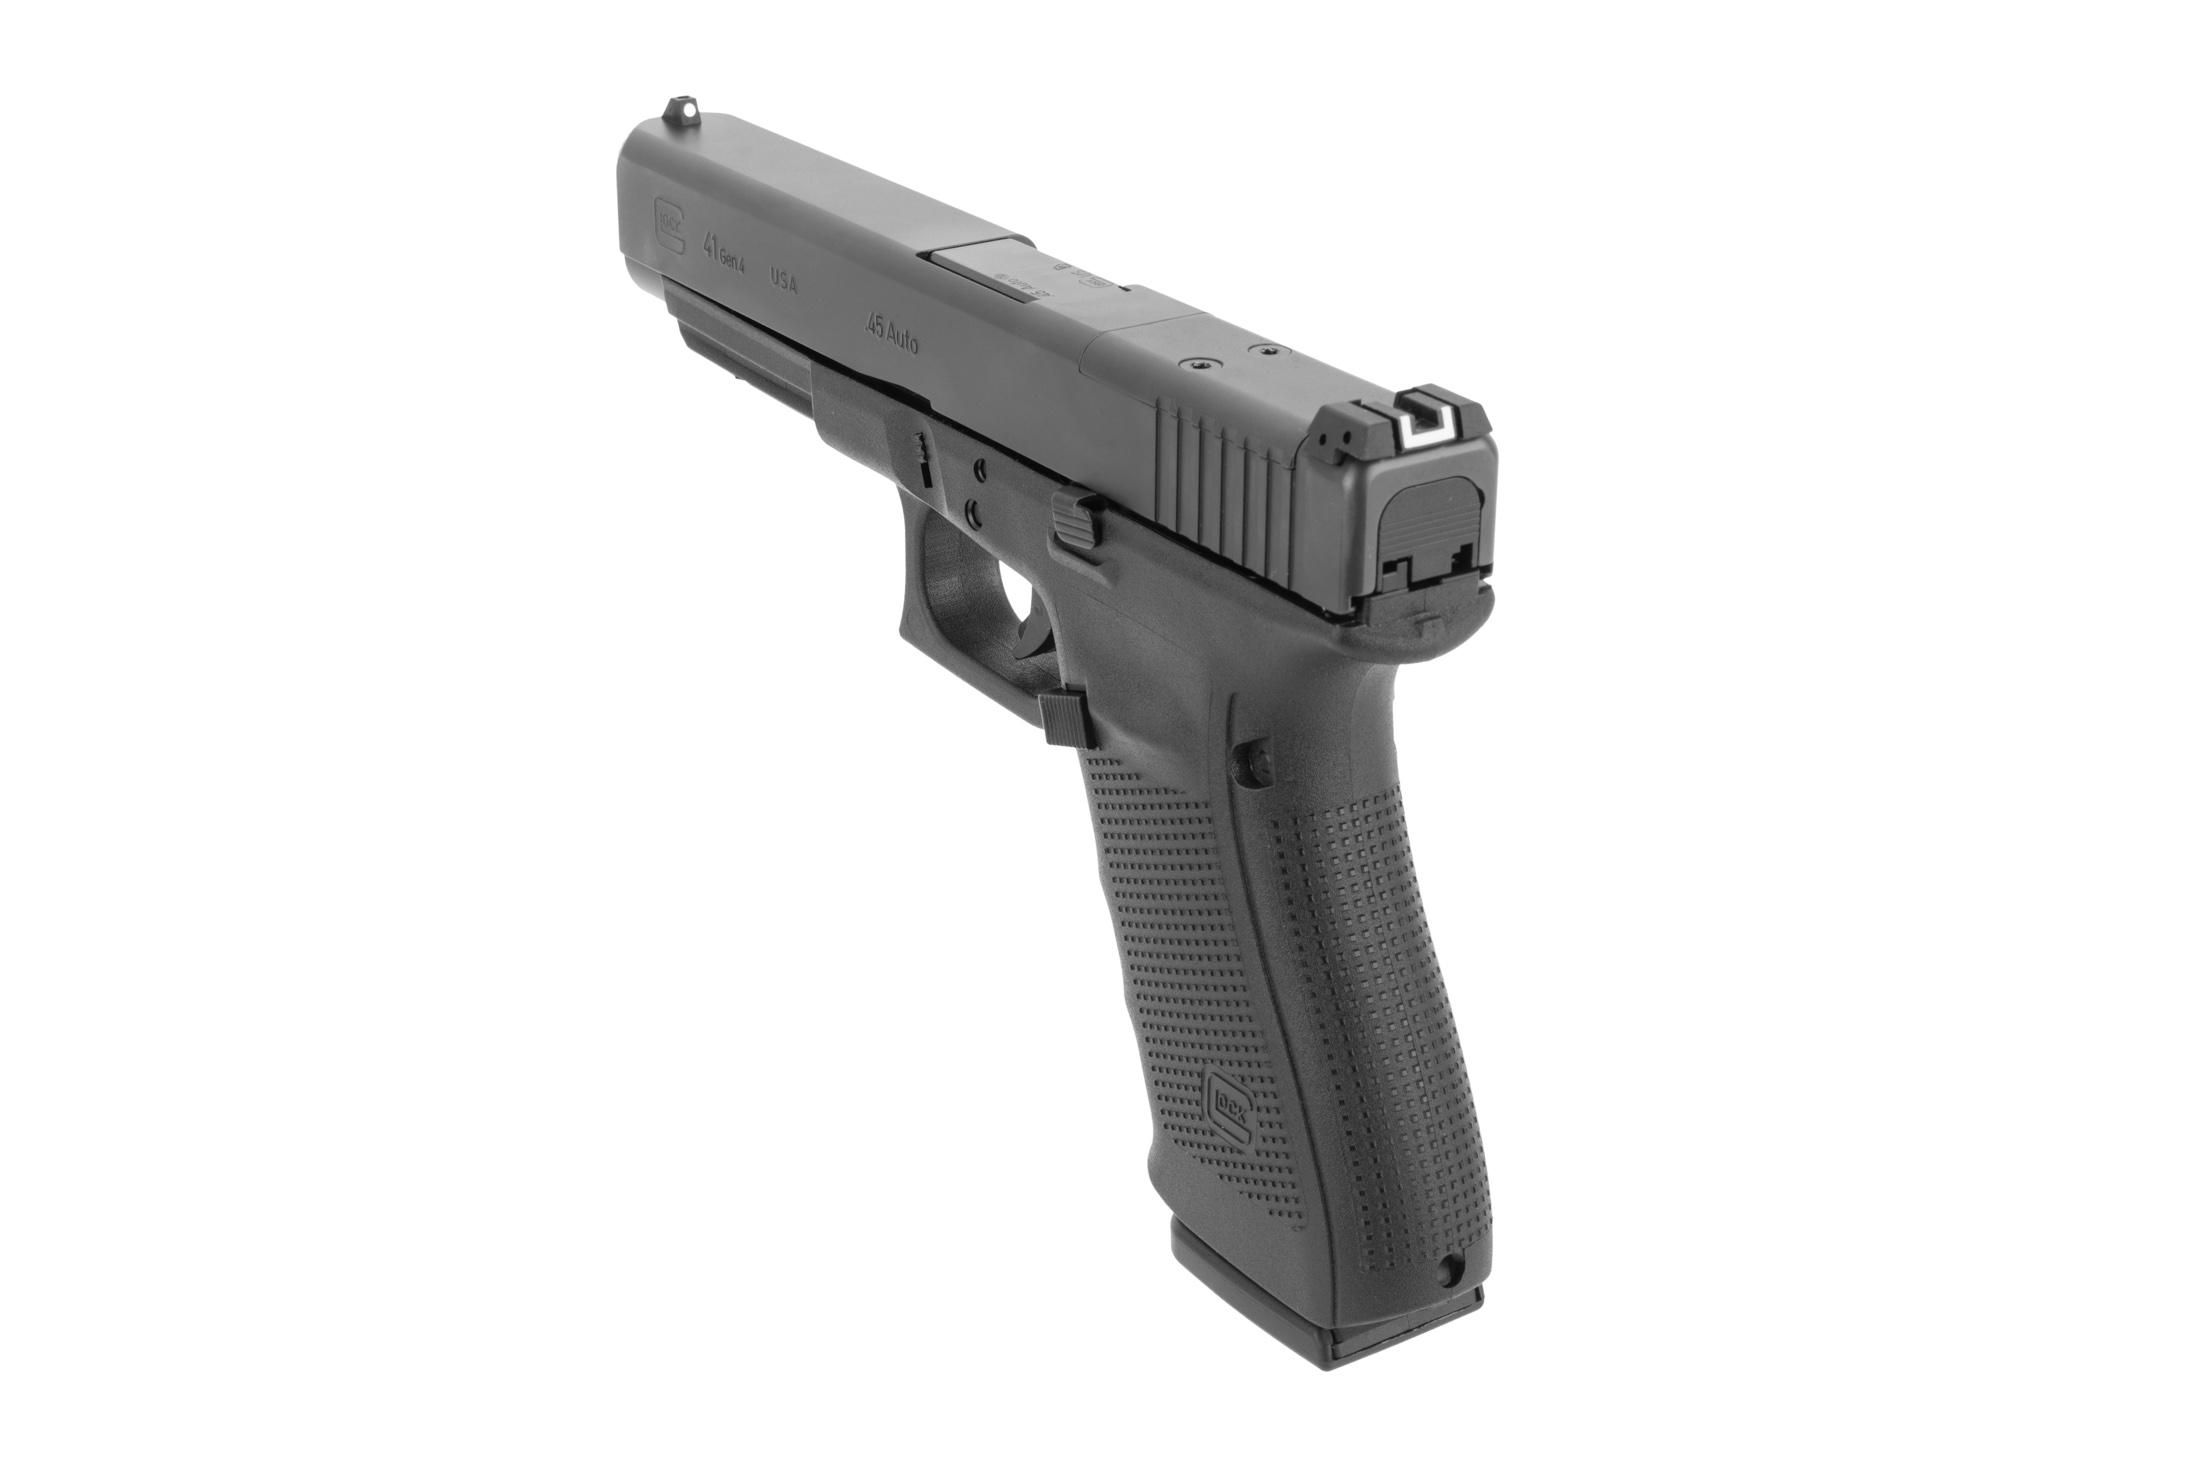 Glock G41 Gen 4 MOS competition handgun with 5.31 .45 ACP barrel includes 13-round magazines